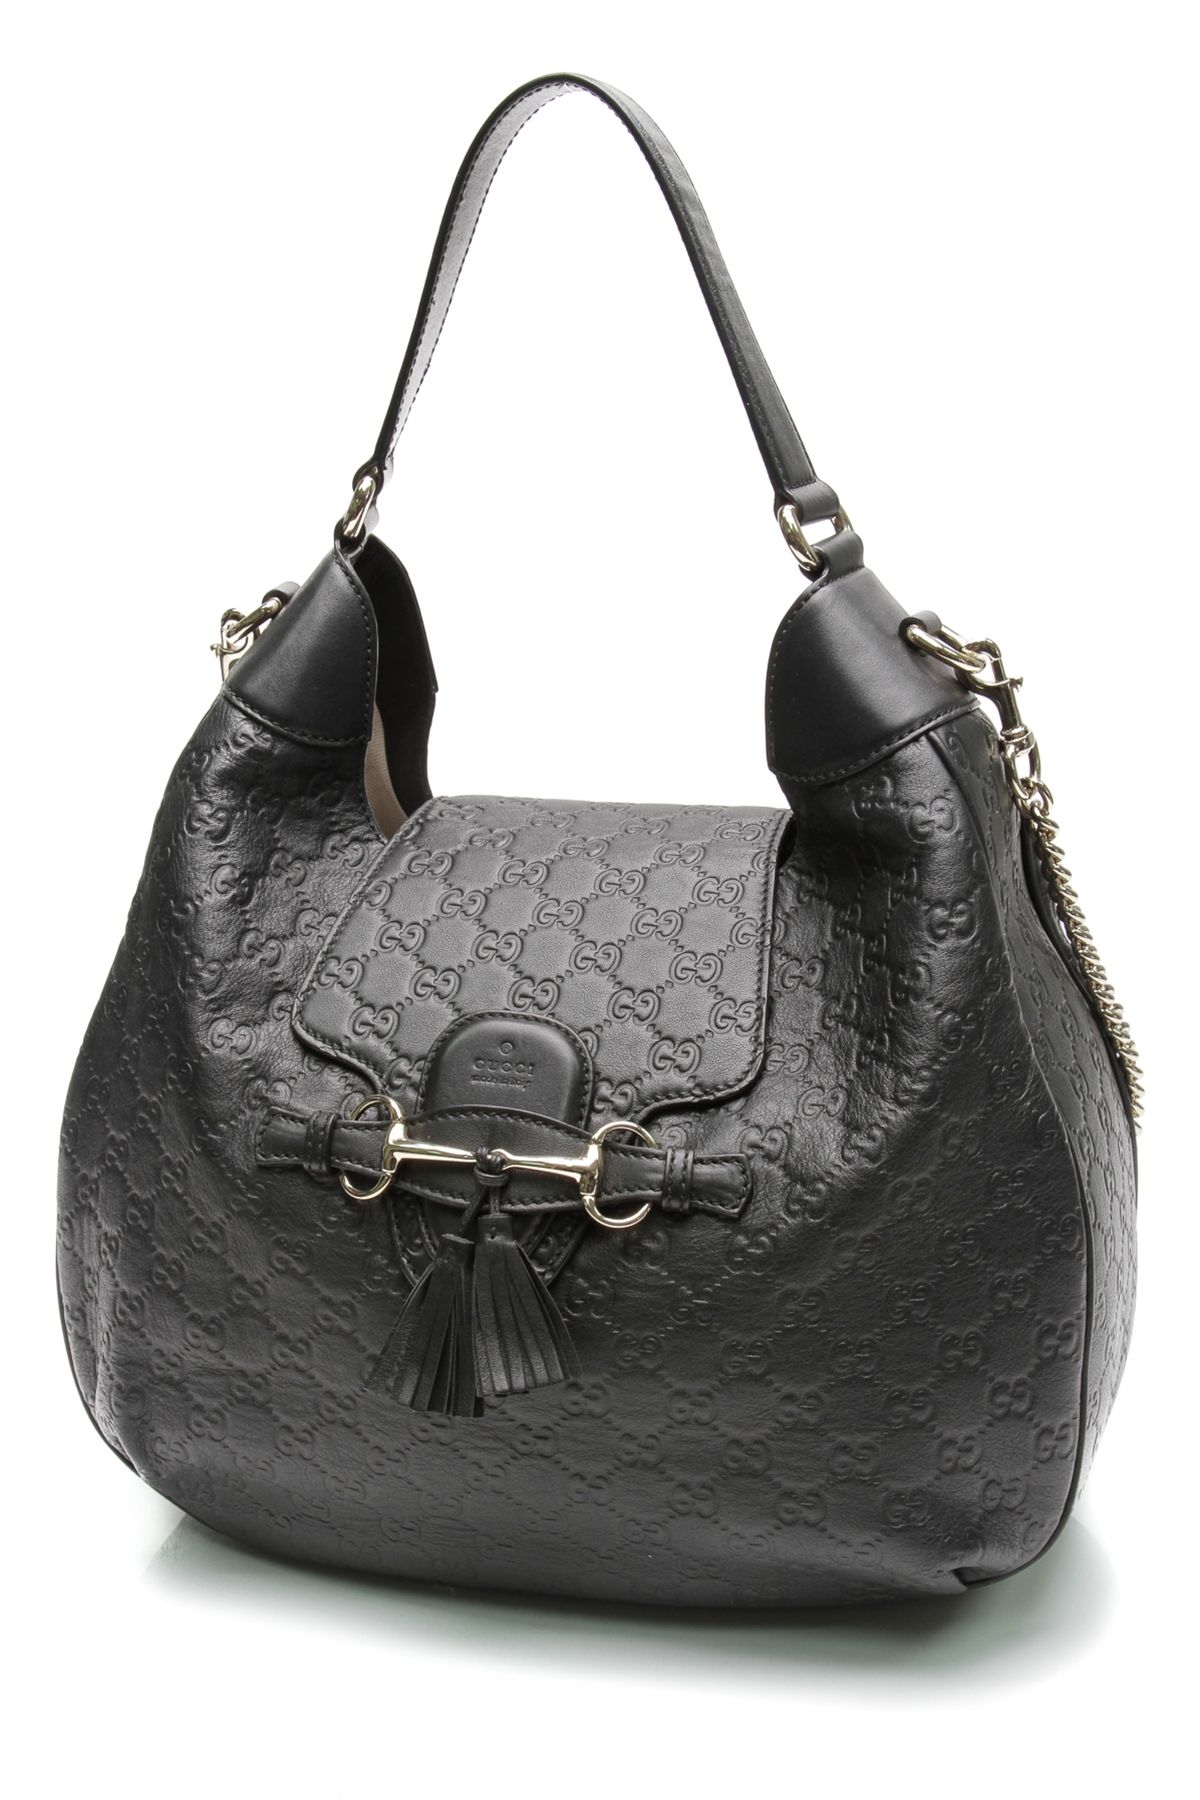 ff71157f1a5ab4 Loving the tassels on this one | Gucci Glam | Bags, Gucci black, Gucci